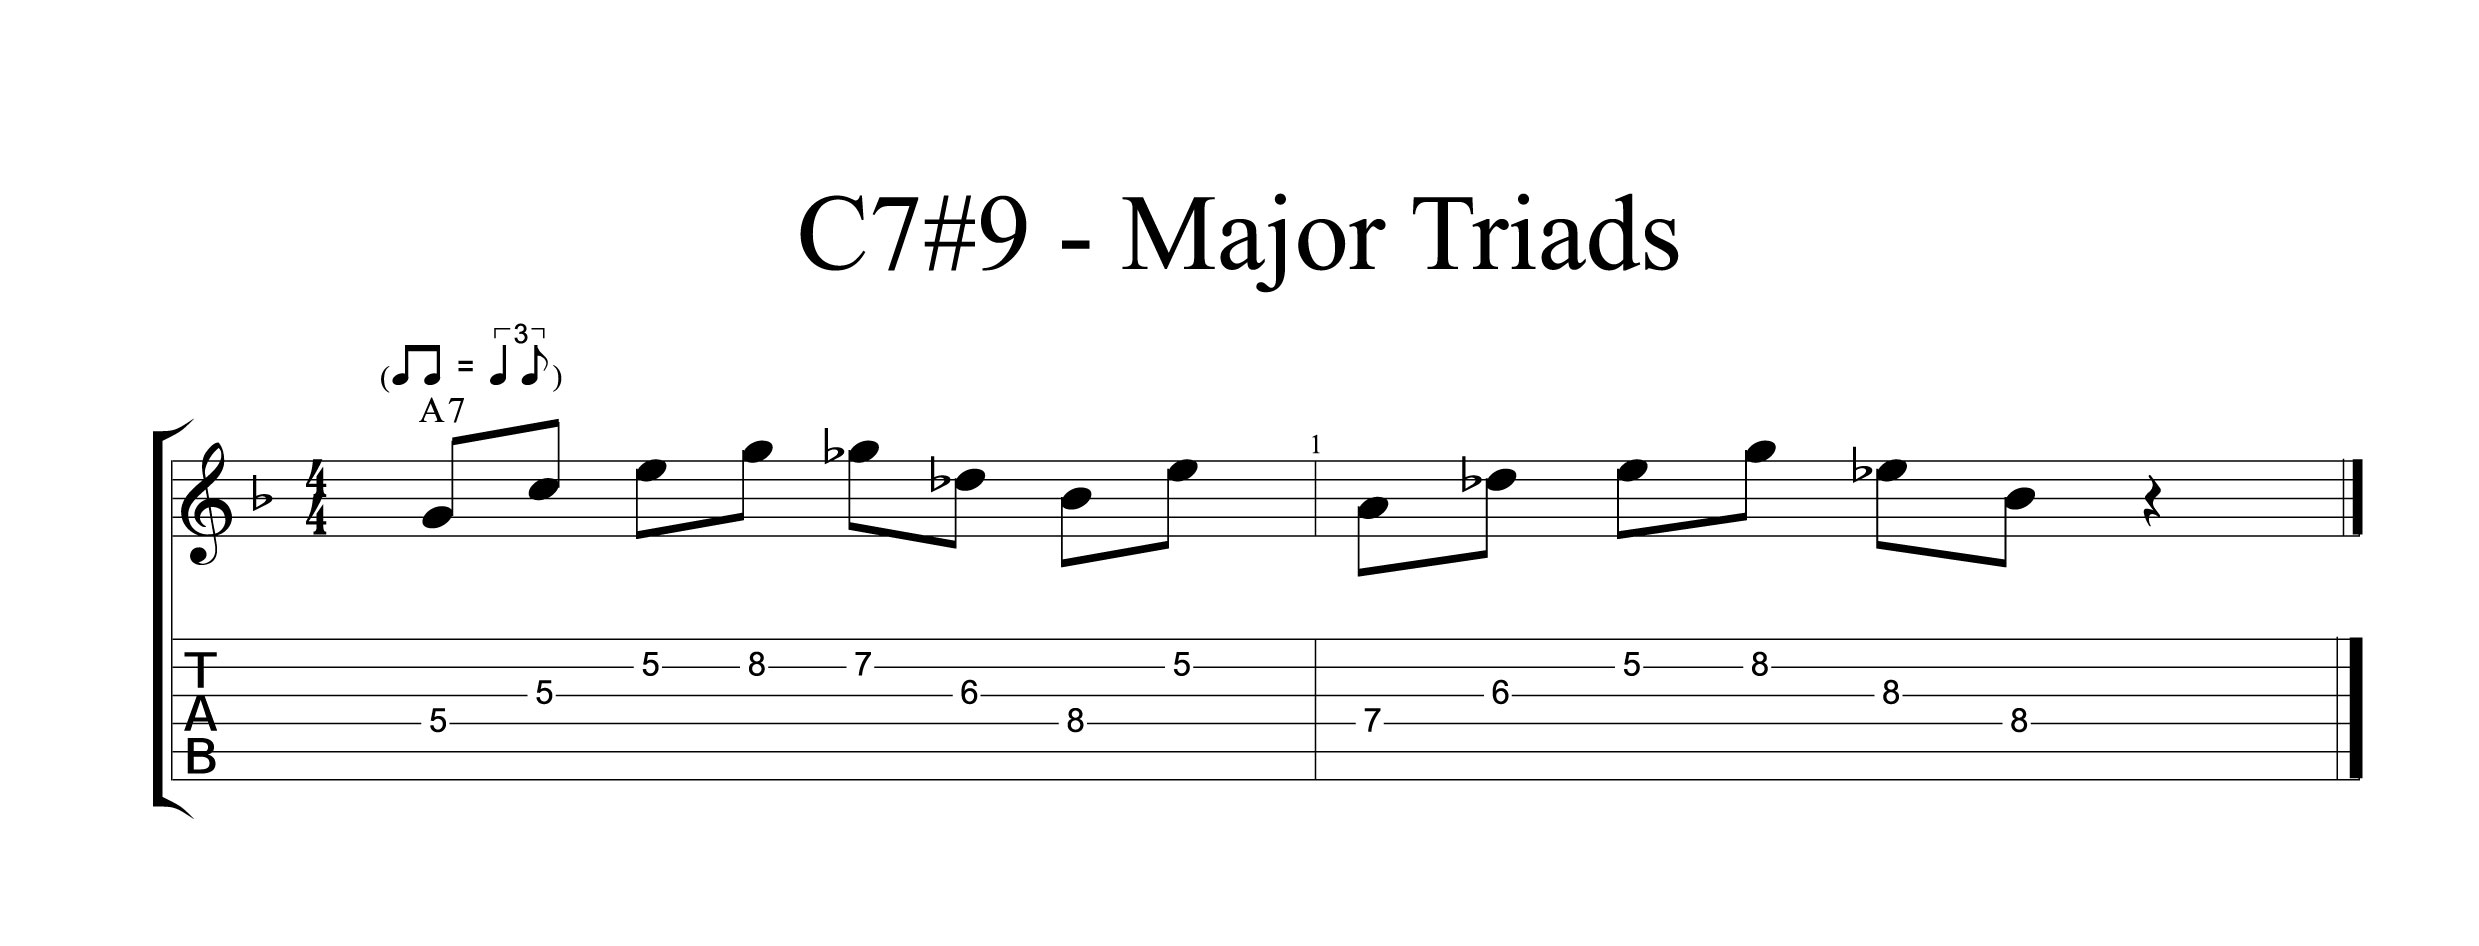 C7#9 - Major Triads